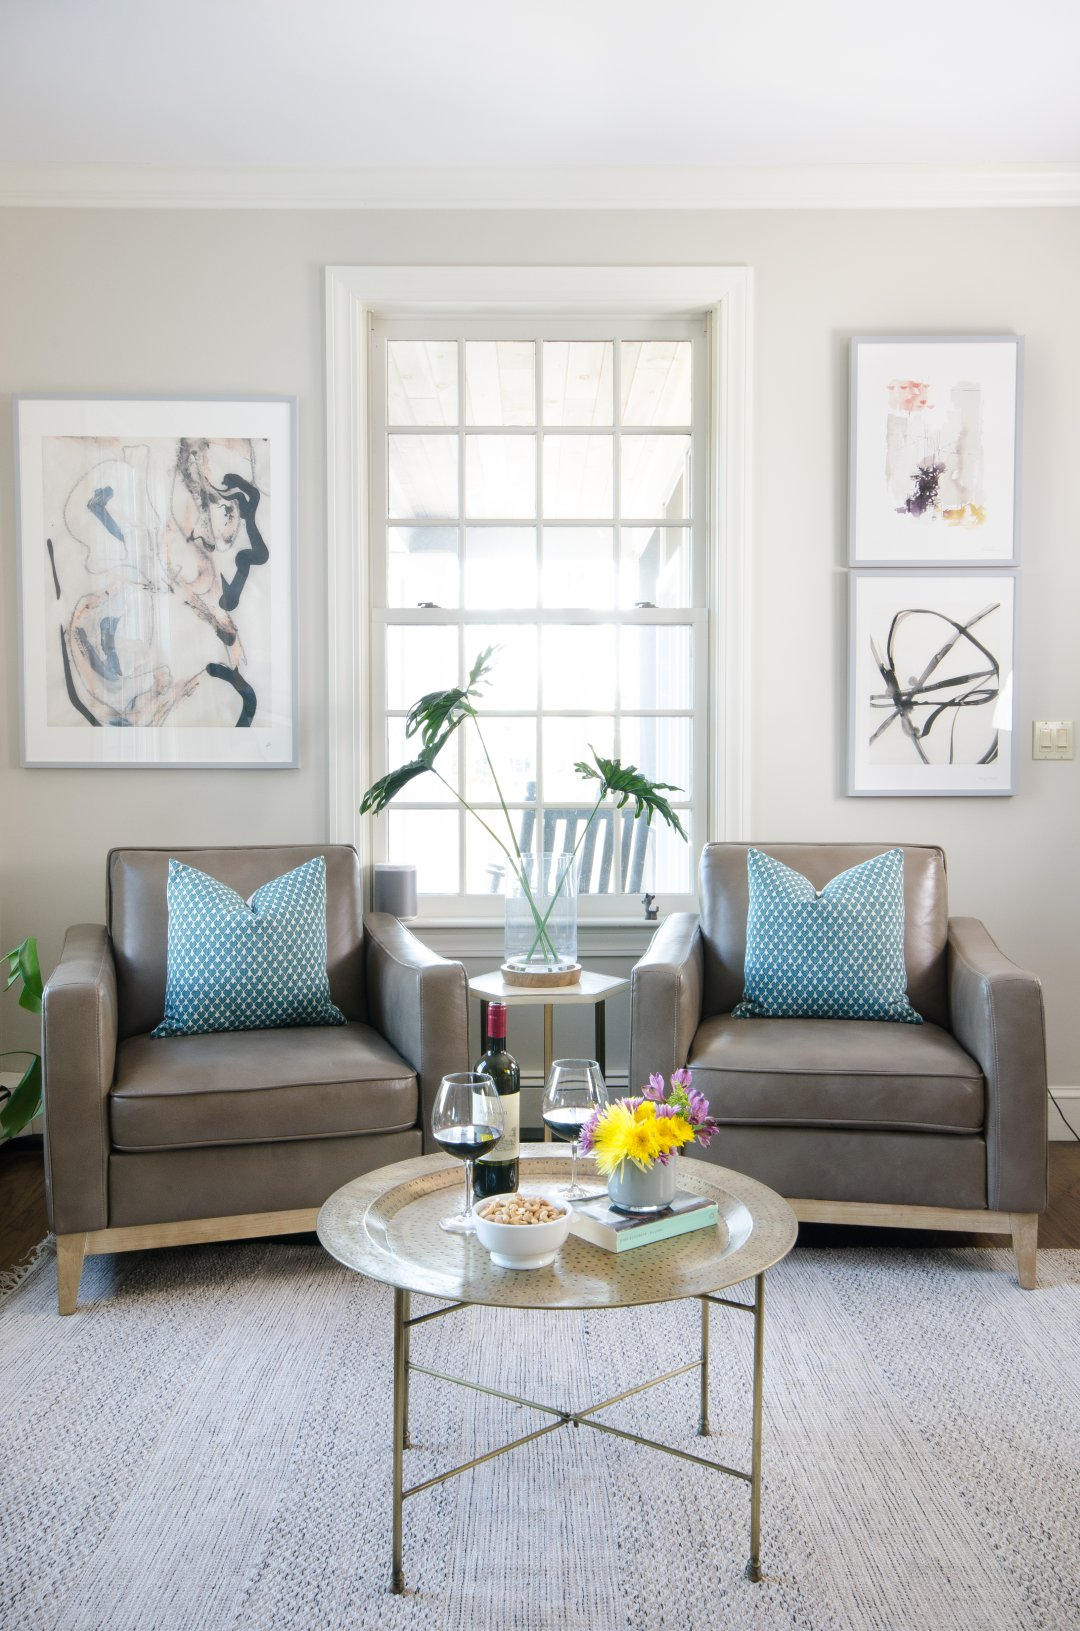 Family Room Makeover Reveal! - The Chronicles of Home